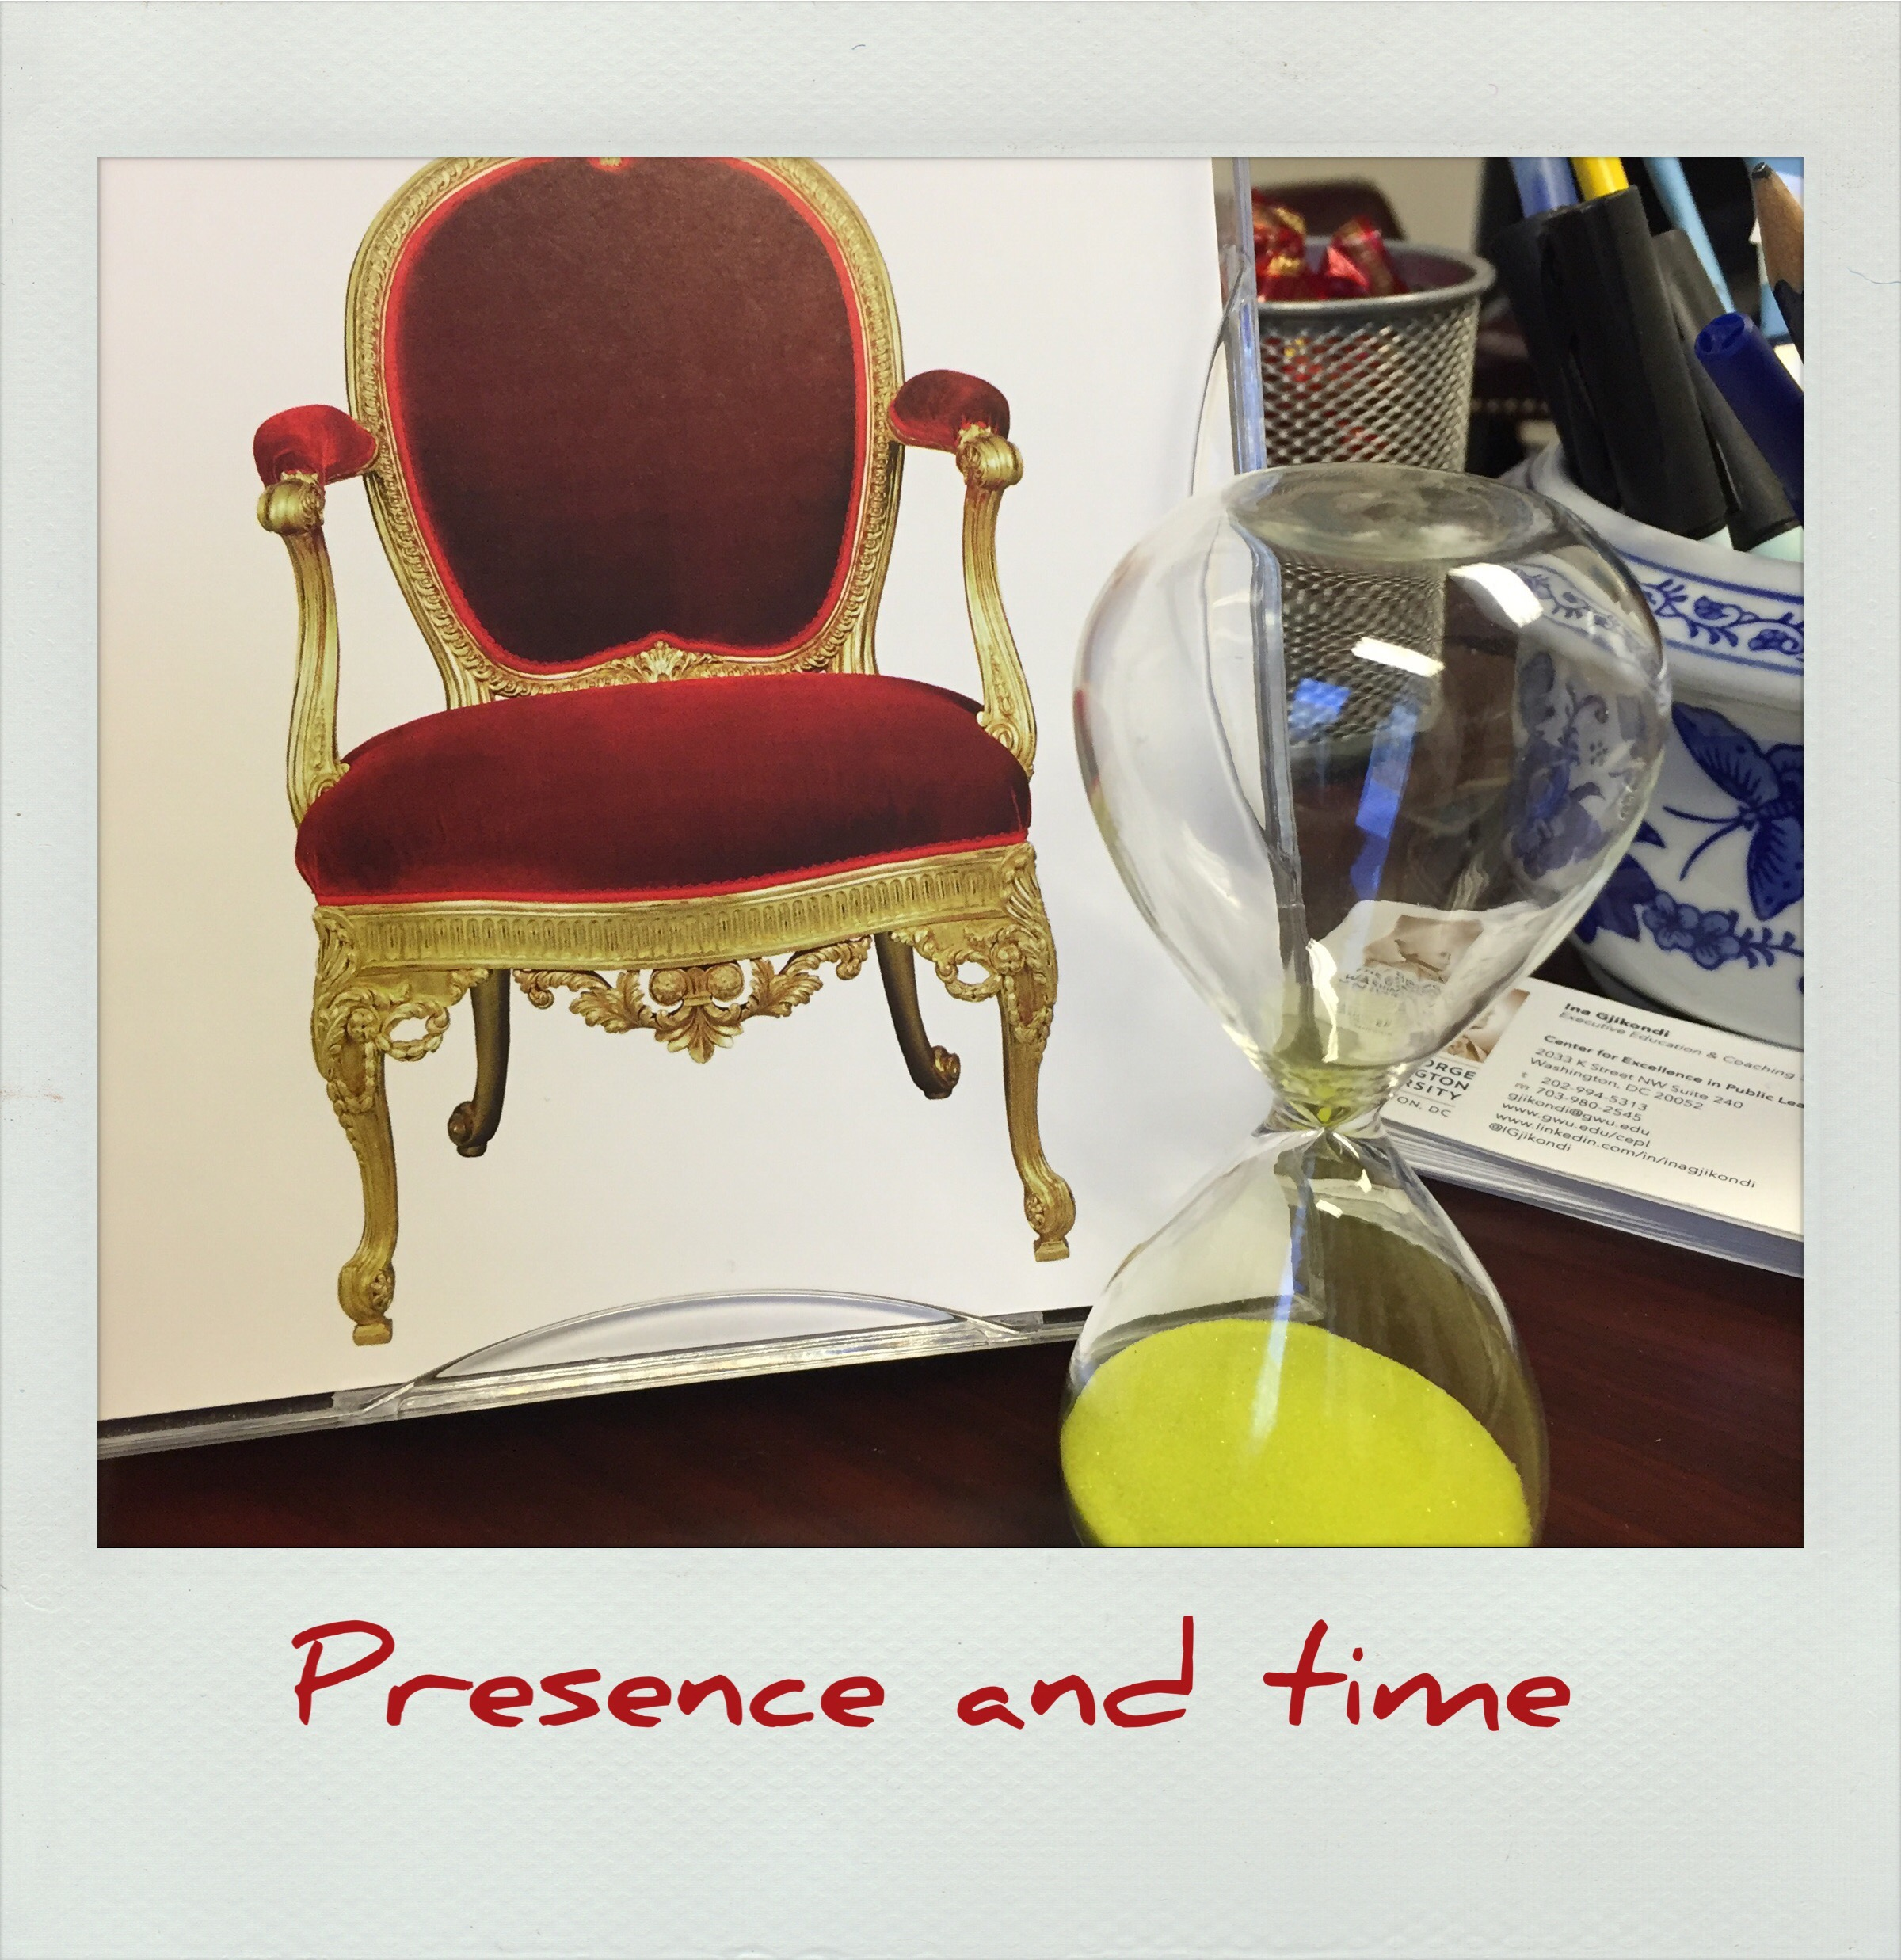 Presence and time